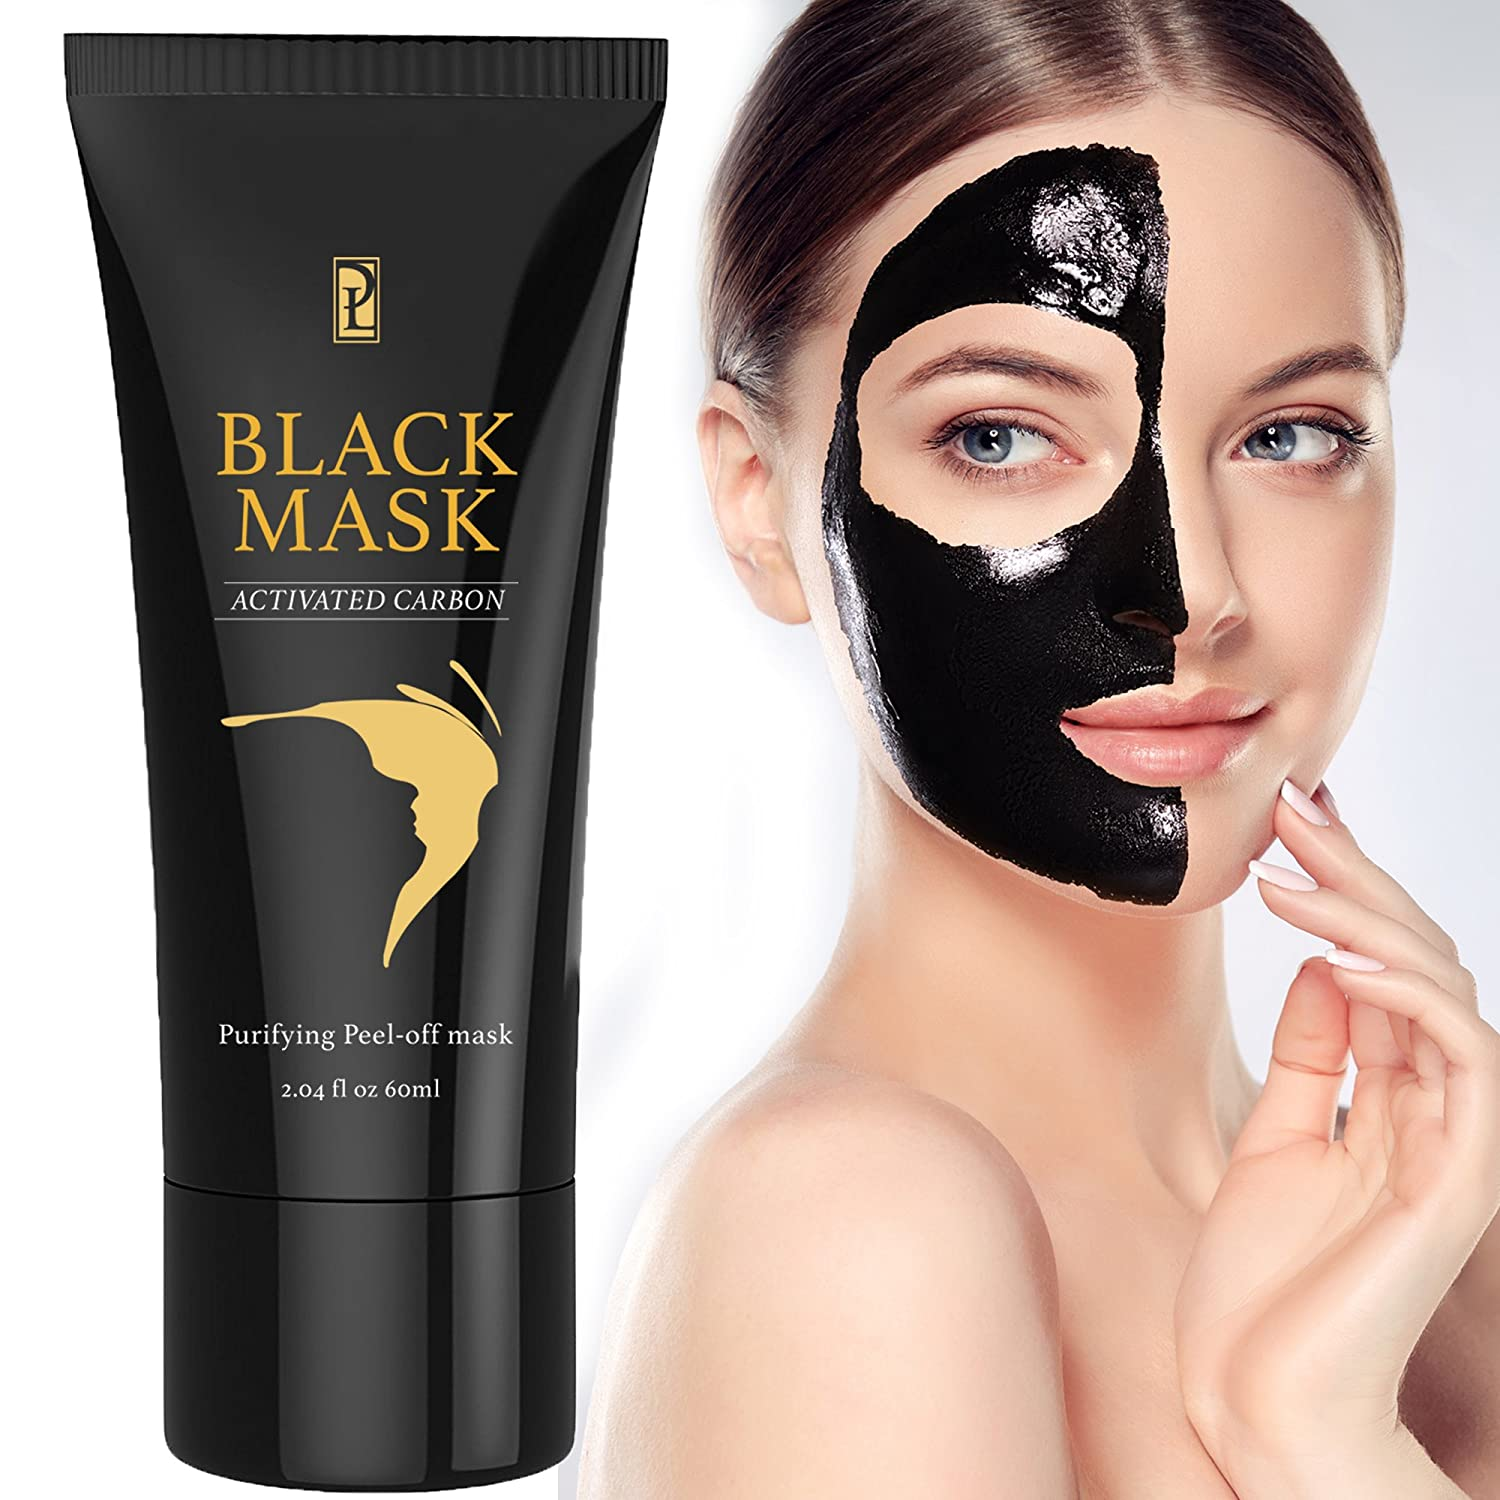 12 simple and effective masks from black spots for different skin types 52